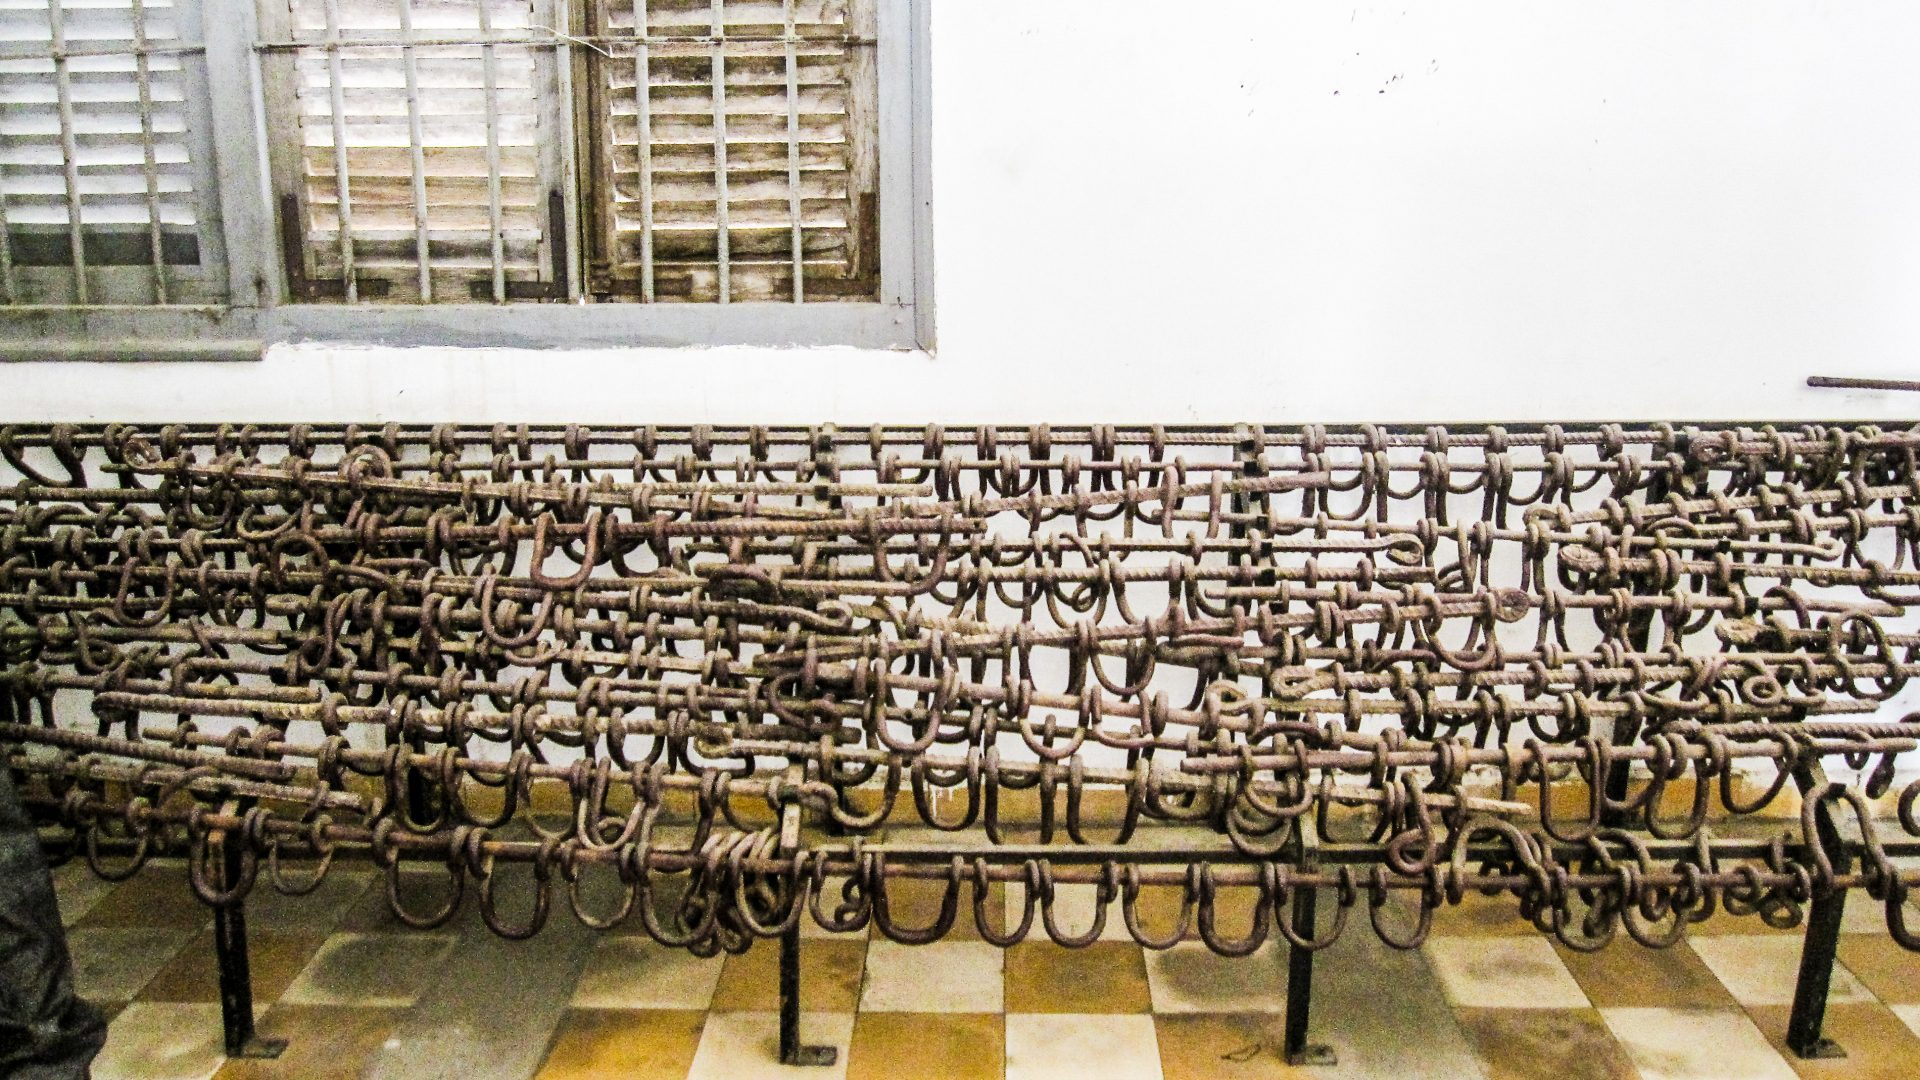 Shackles used on prisoners in Cambodia's notorious S-21 prison.